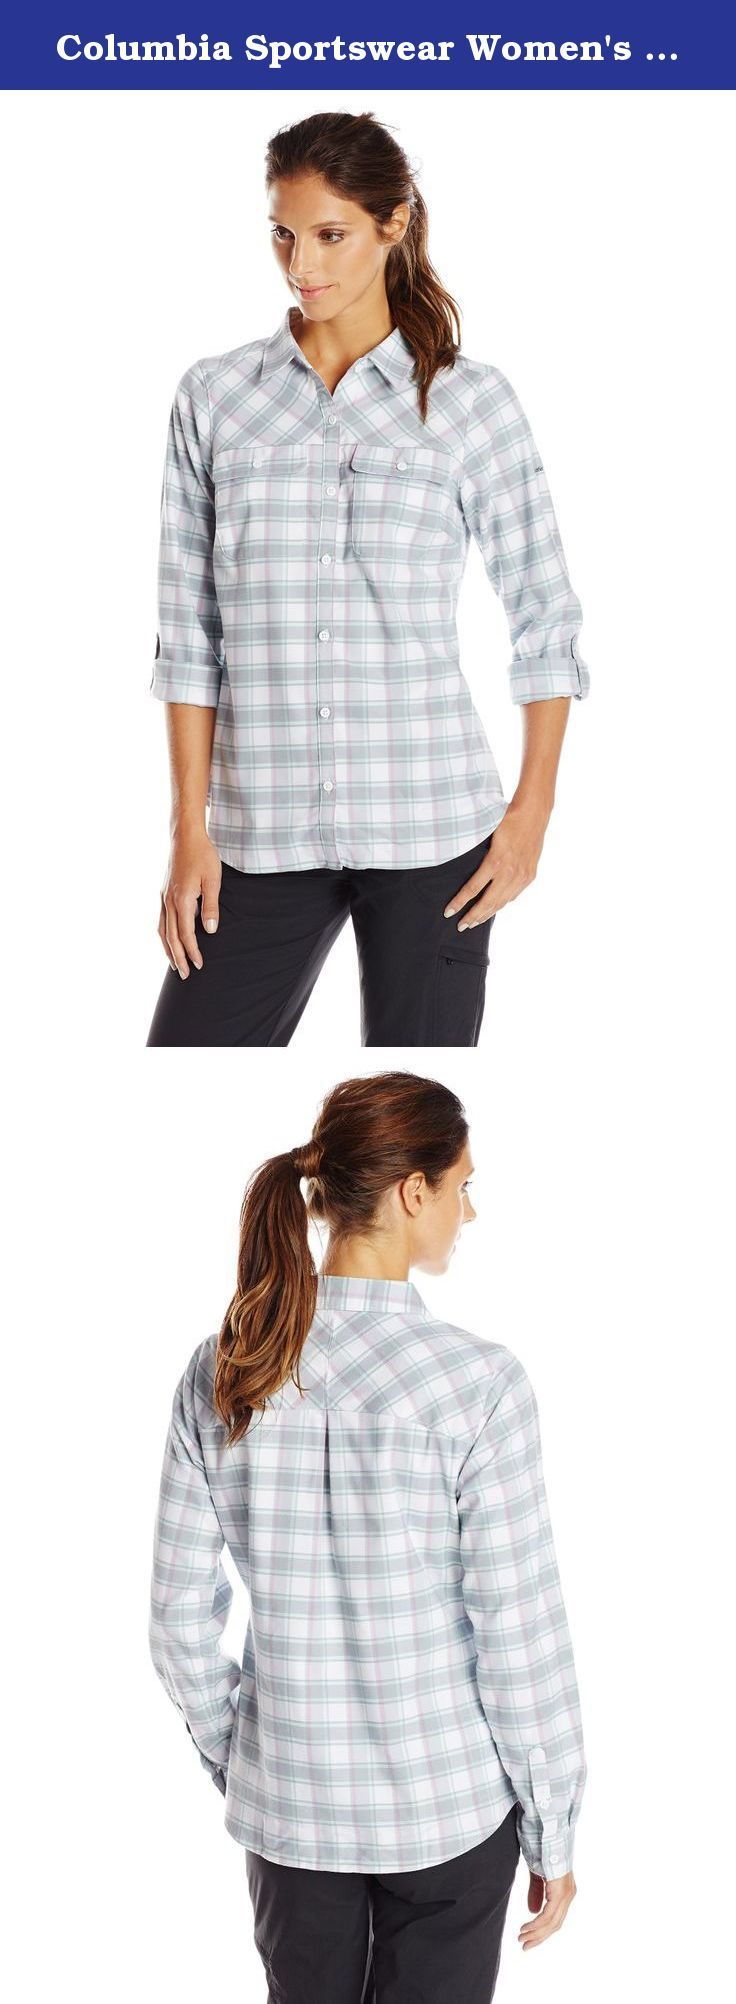 Columbia Sportswear Women's Saturday Trail II Flannel Shirt, Blueglass, X-Large. The softness and rugged style of true flannel with the comfort and mobility of performance stretch—this modern take on the flannel button-up features a longer, feminine silhouette that moves with you, as well as breathable, sweat-wicking technology for supreme comfort out on the trail.